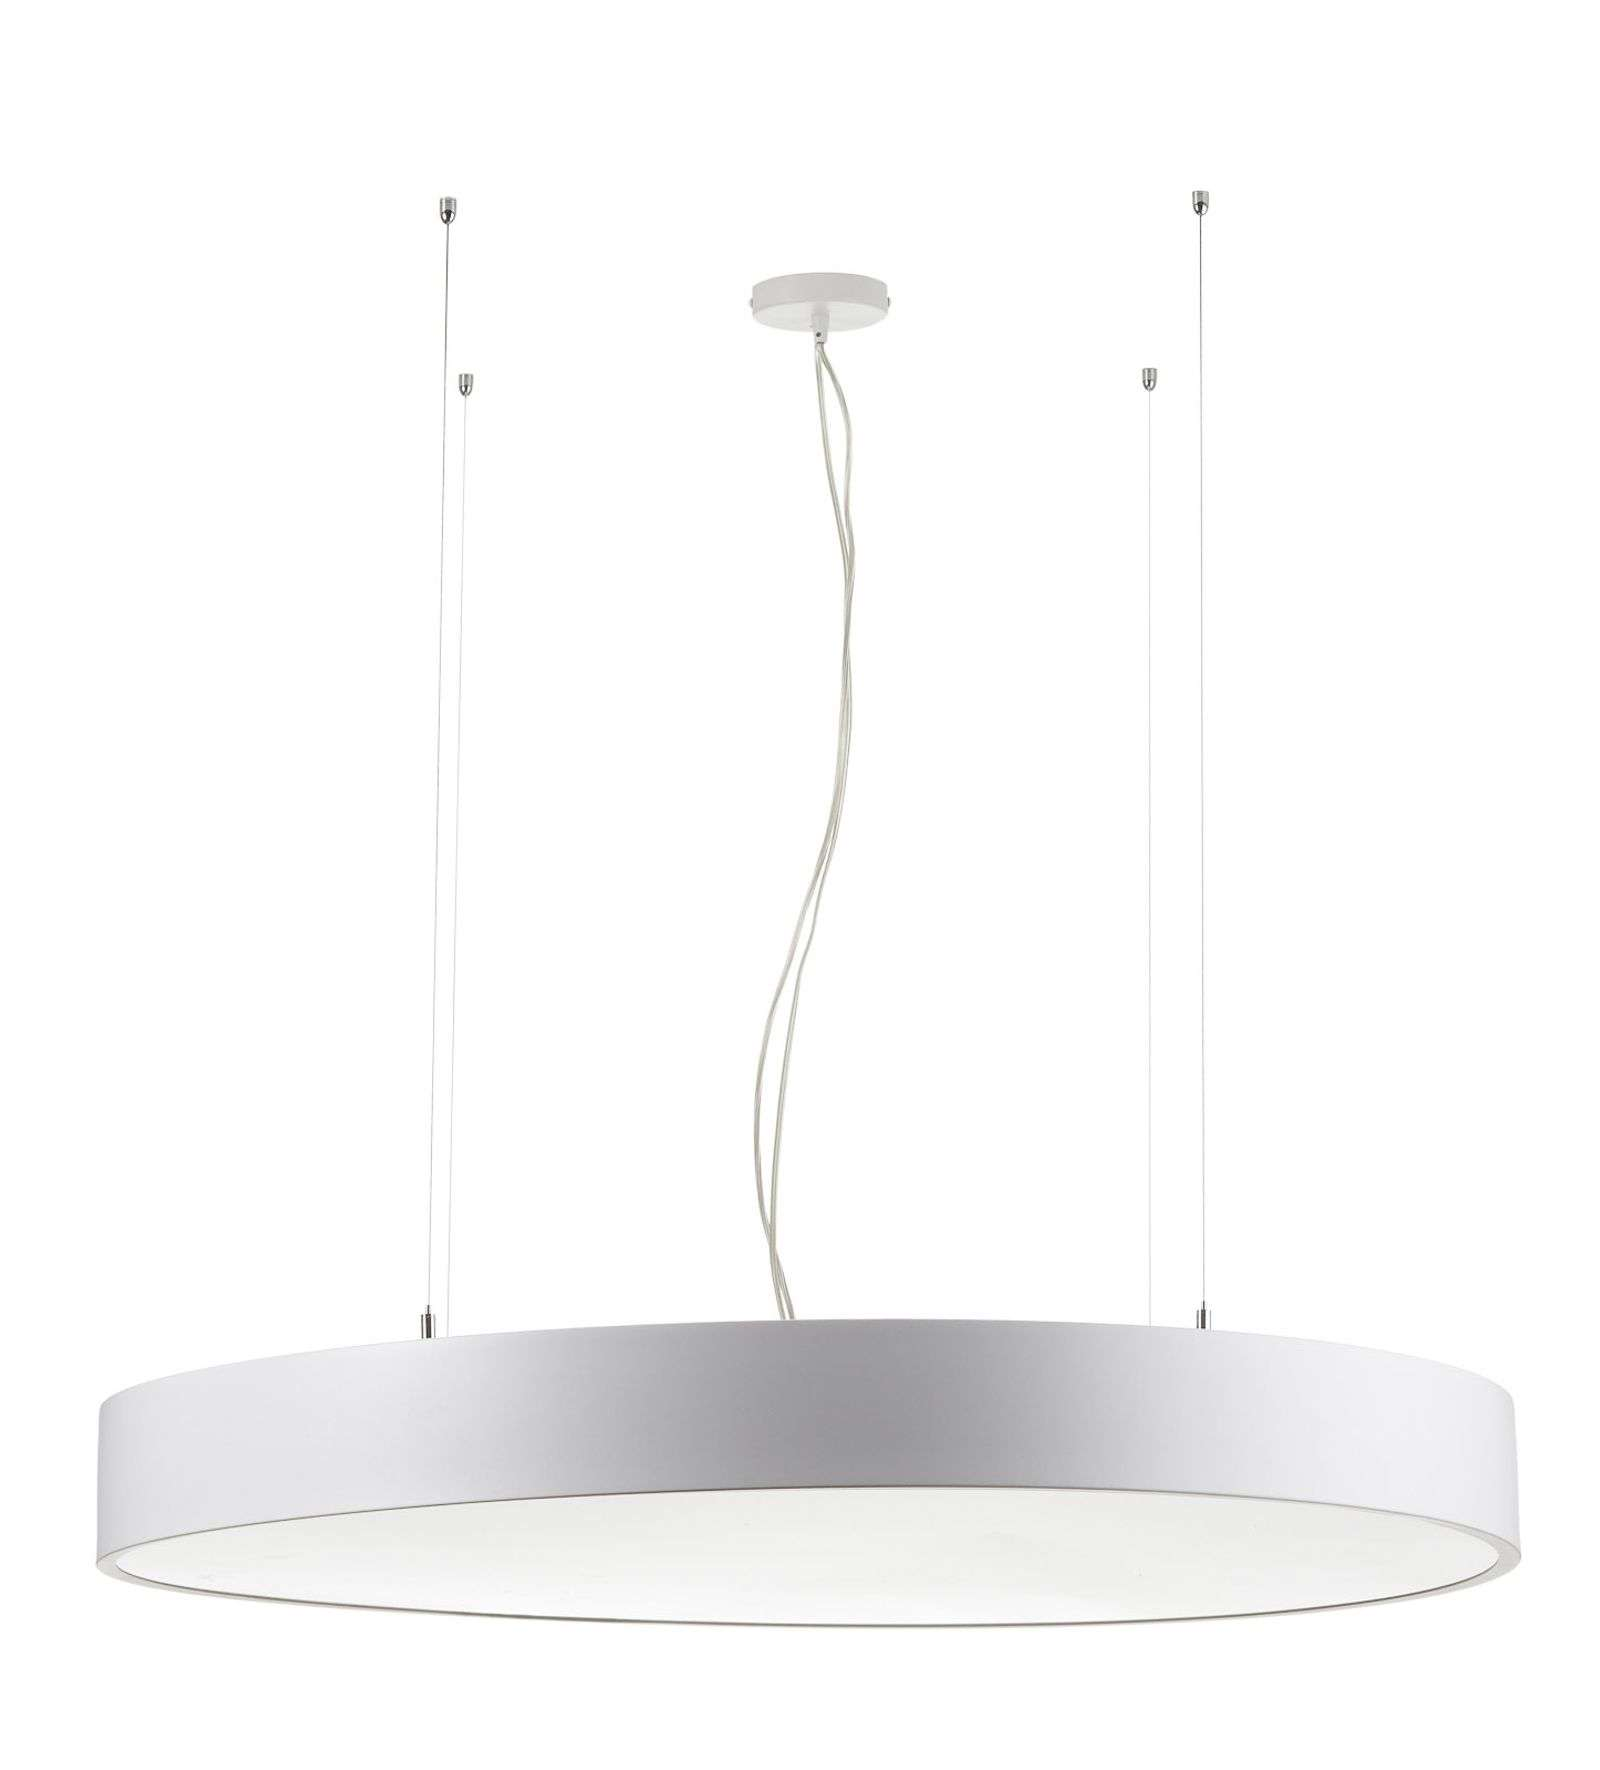 Grande suspension LED Isia, dimmable, 100cm Ø